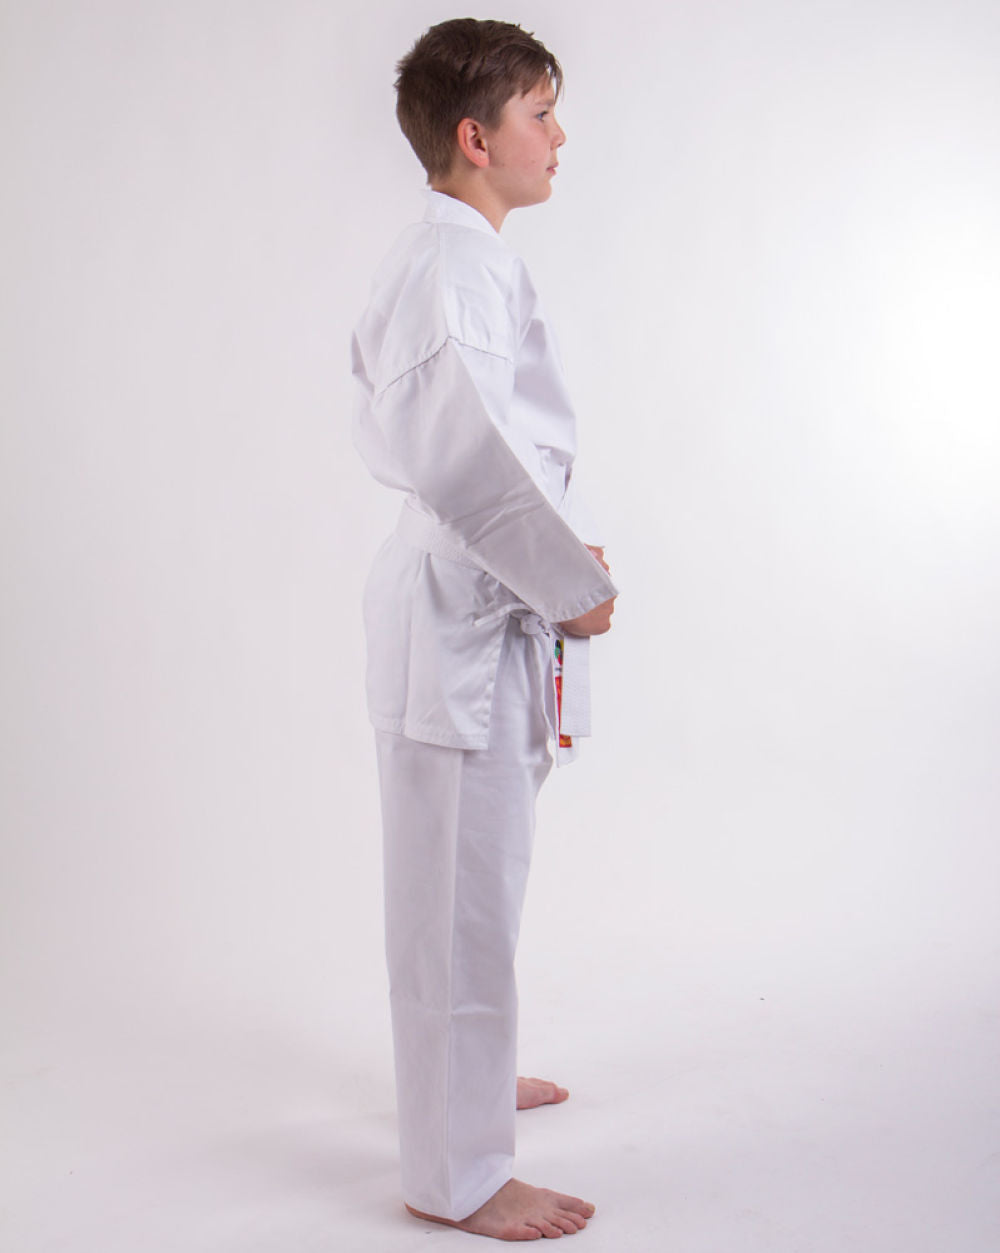 Hayashi HEIAN Lightweight White student uniform - 7oz WKF approved SPE